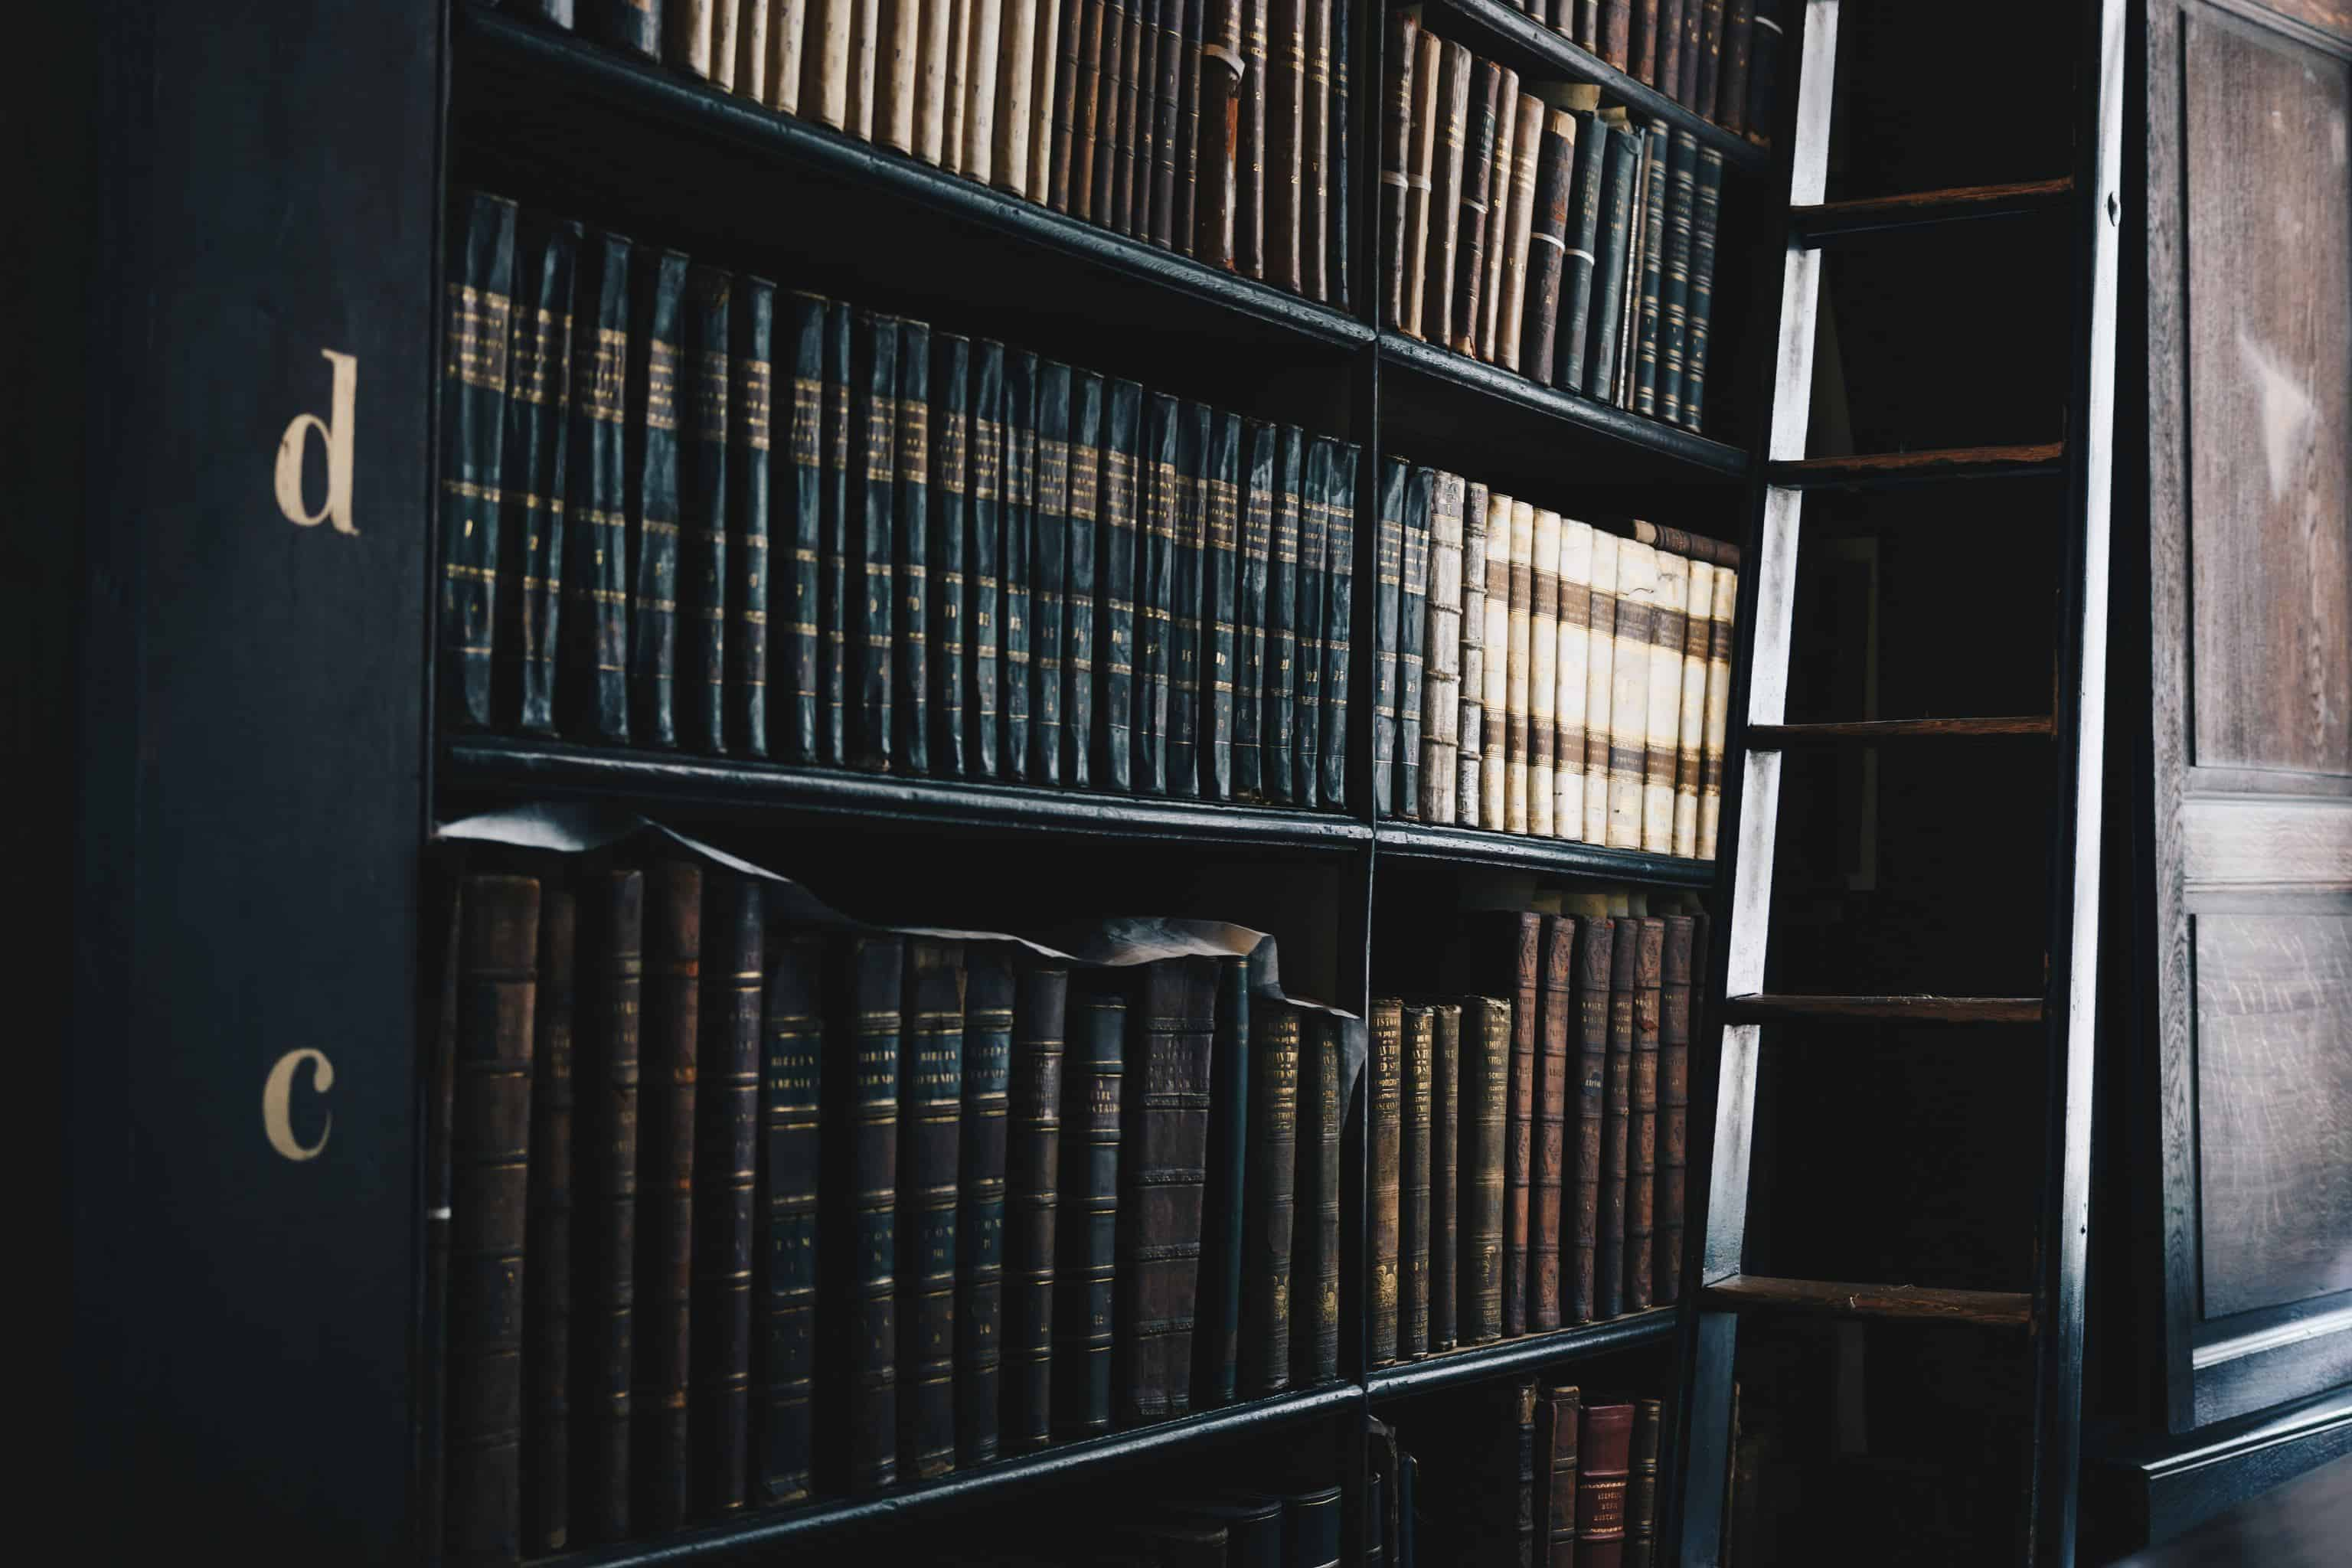 Shelf with books as a symbol for legal texts and jurisprudence